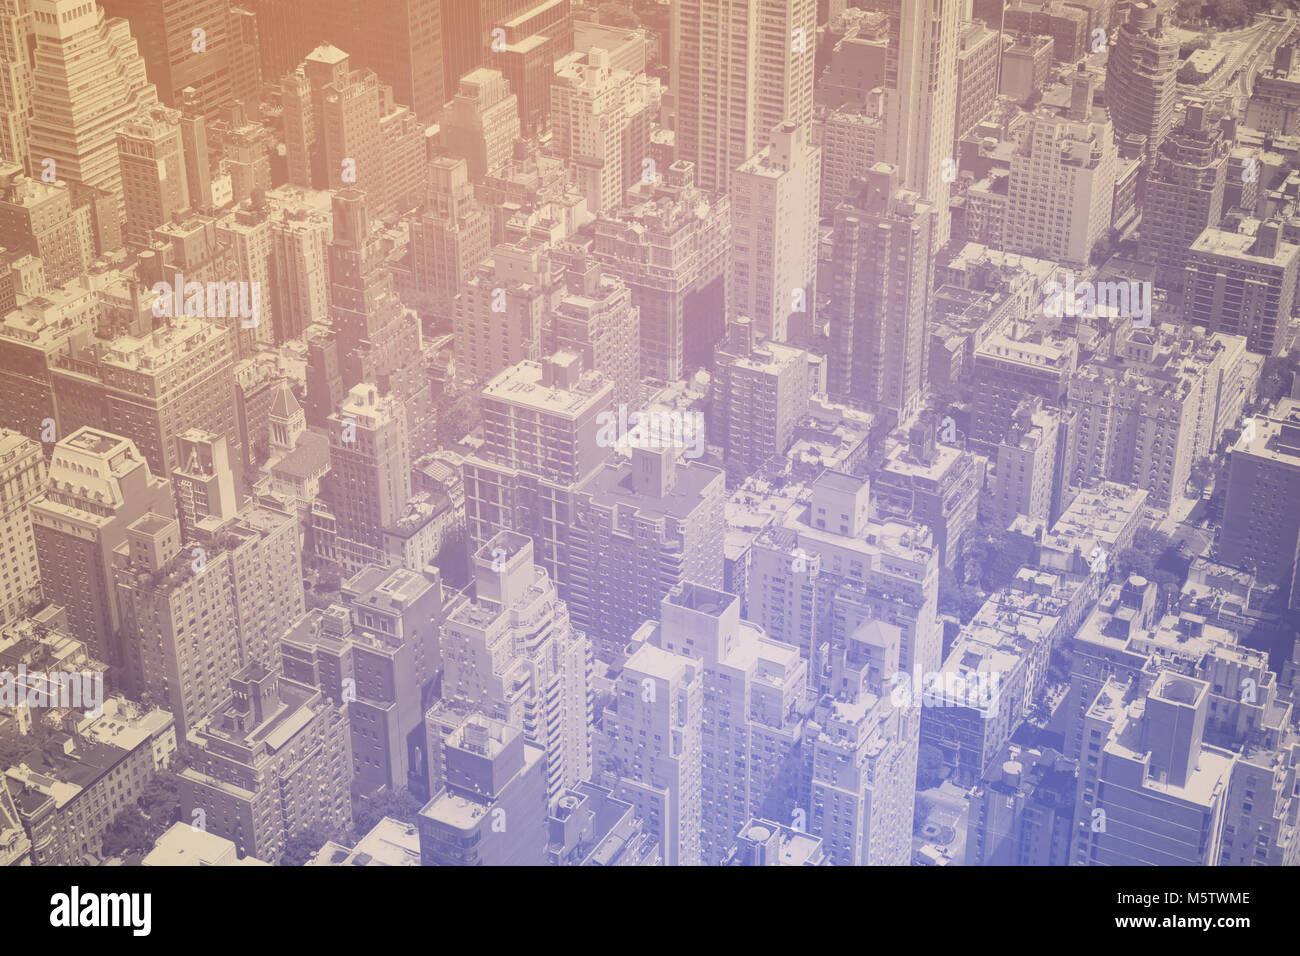 Overhead view of crowded buildings in Manhattan New York City - Stock Image